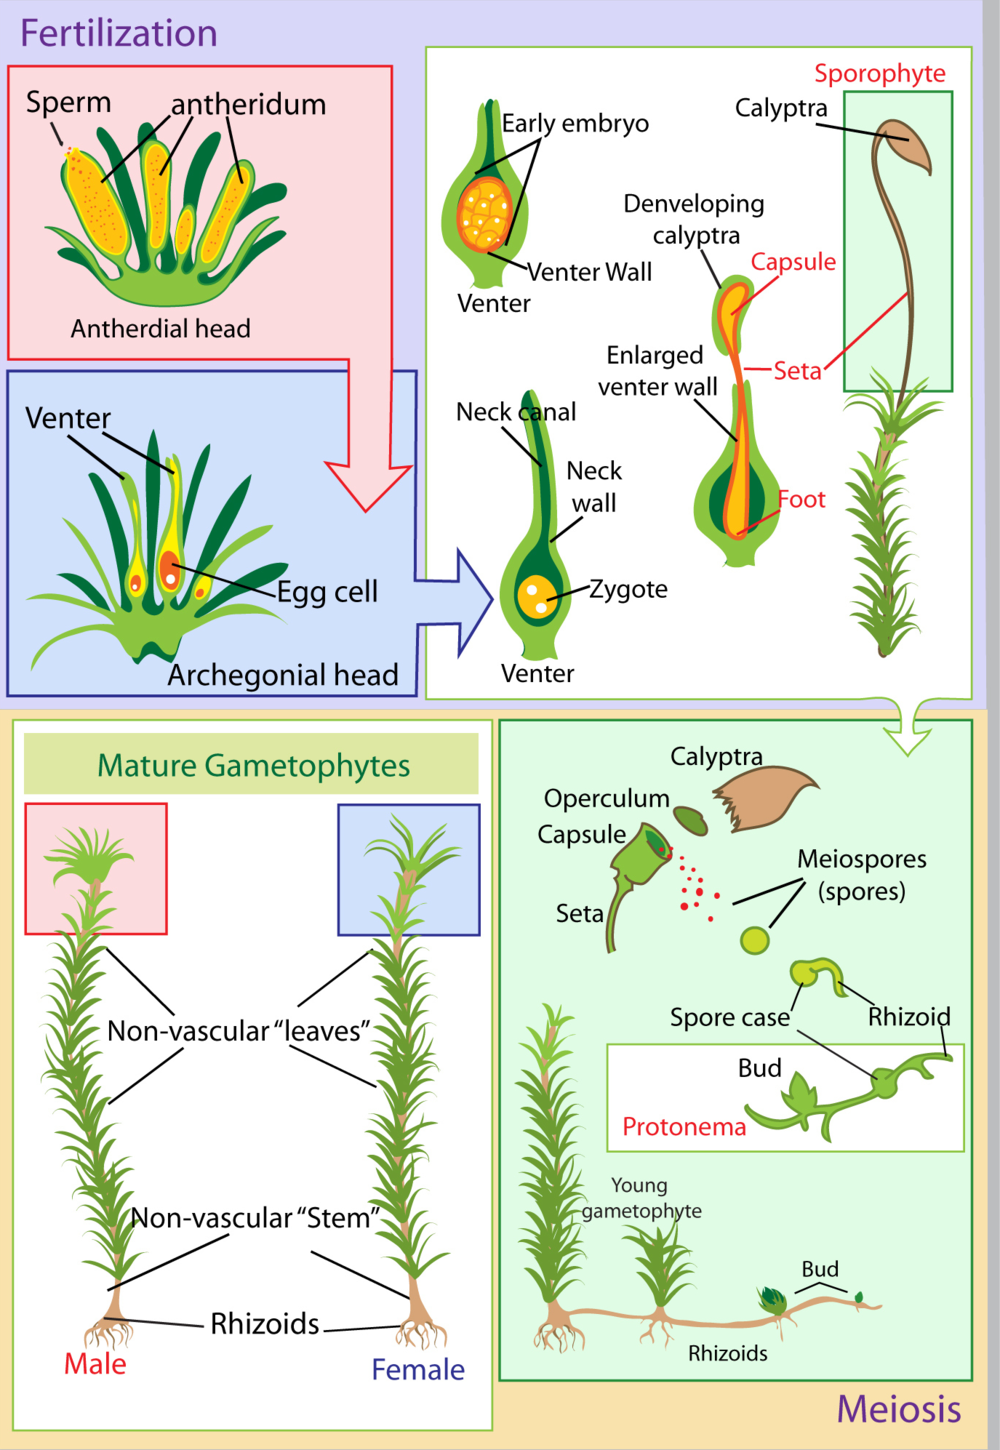 Moss life cycle. Illustration: LadyofHats 2005. Source: Wikimedia Commons.